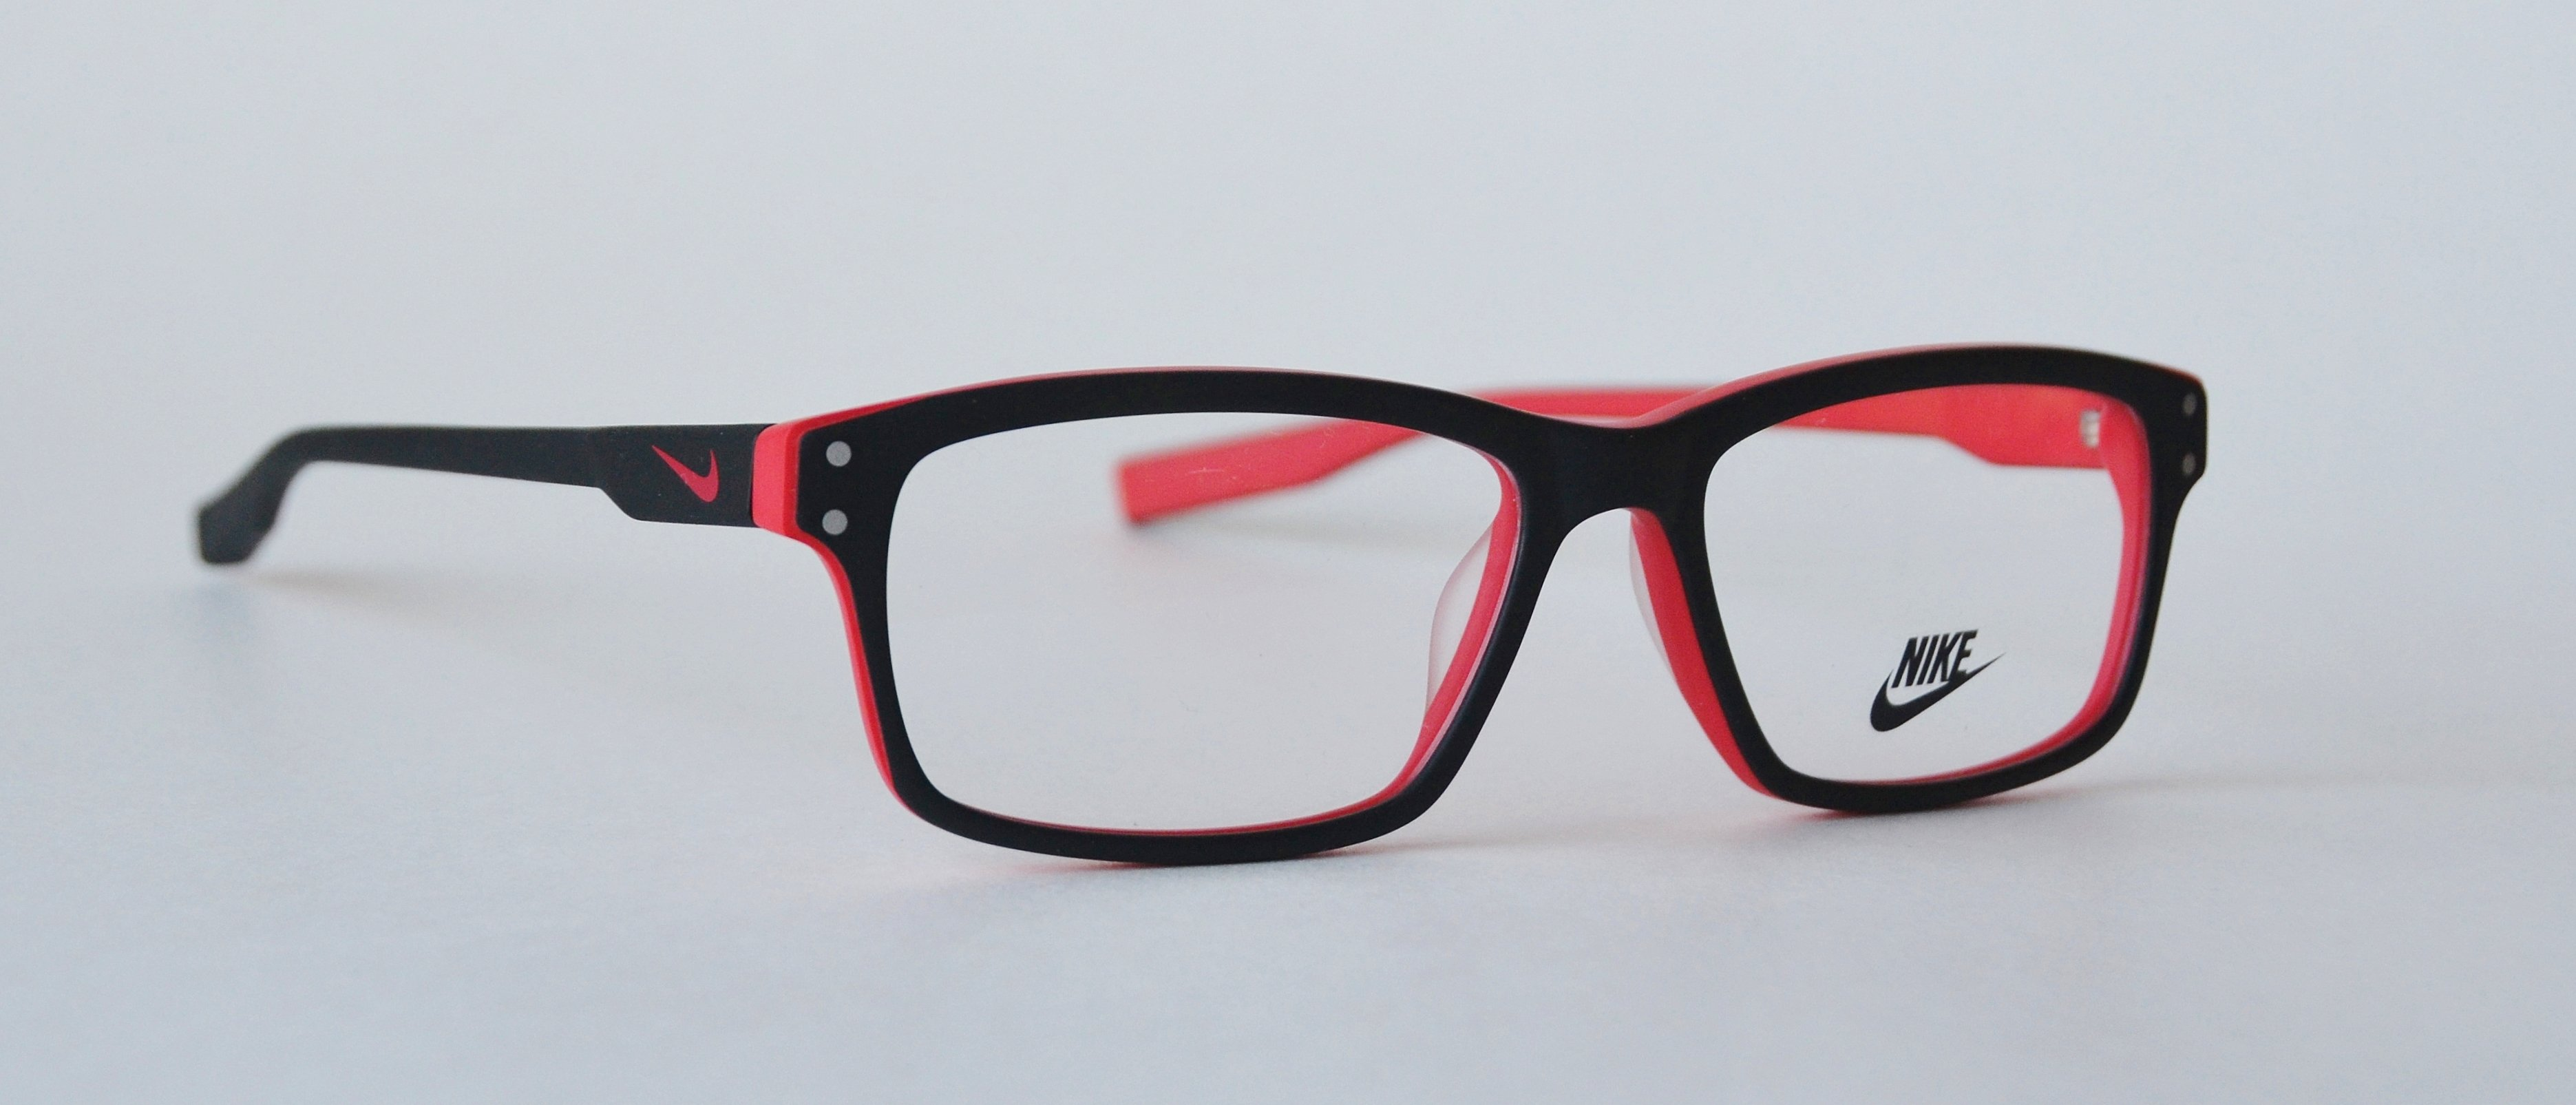 Eyeglasses and Sunglasses All Styles and Budgets ...